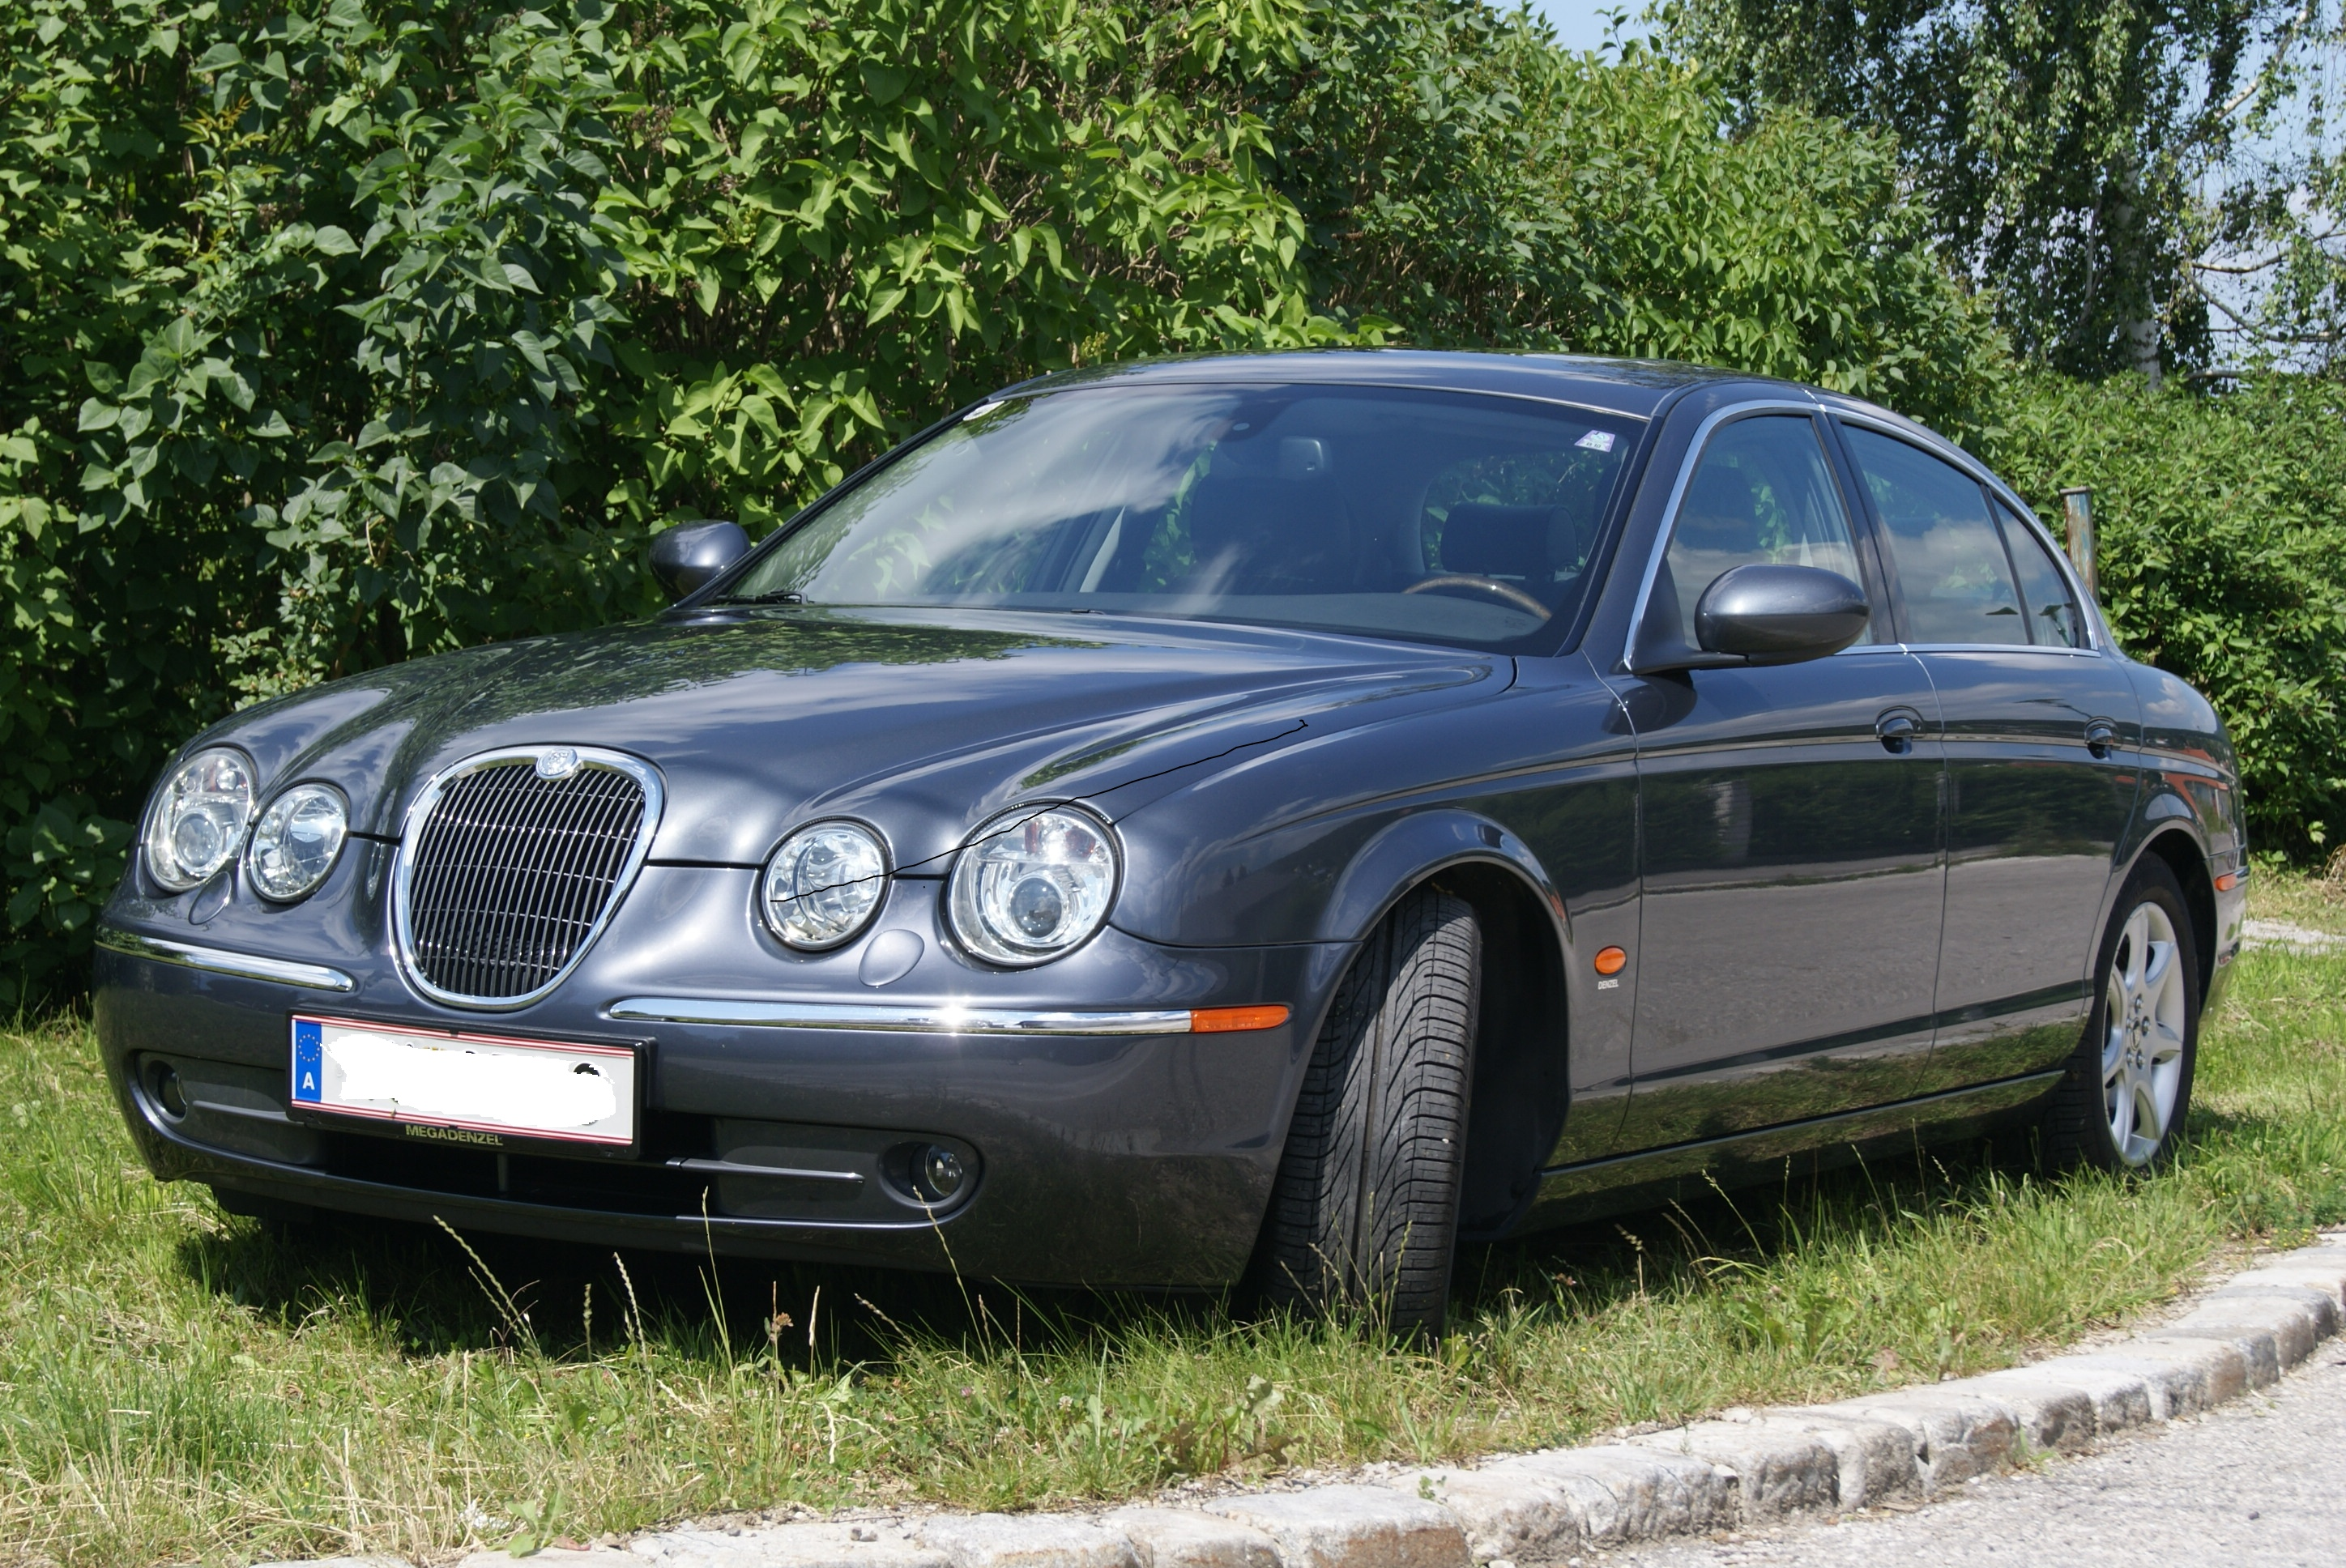 jaguar s-type (ccx) 2007 models